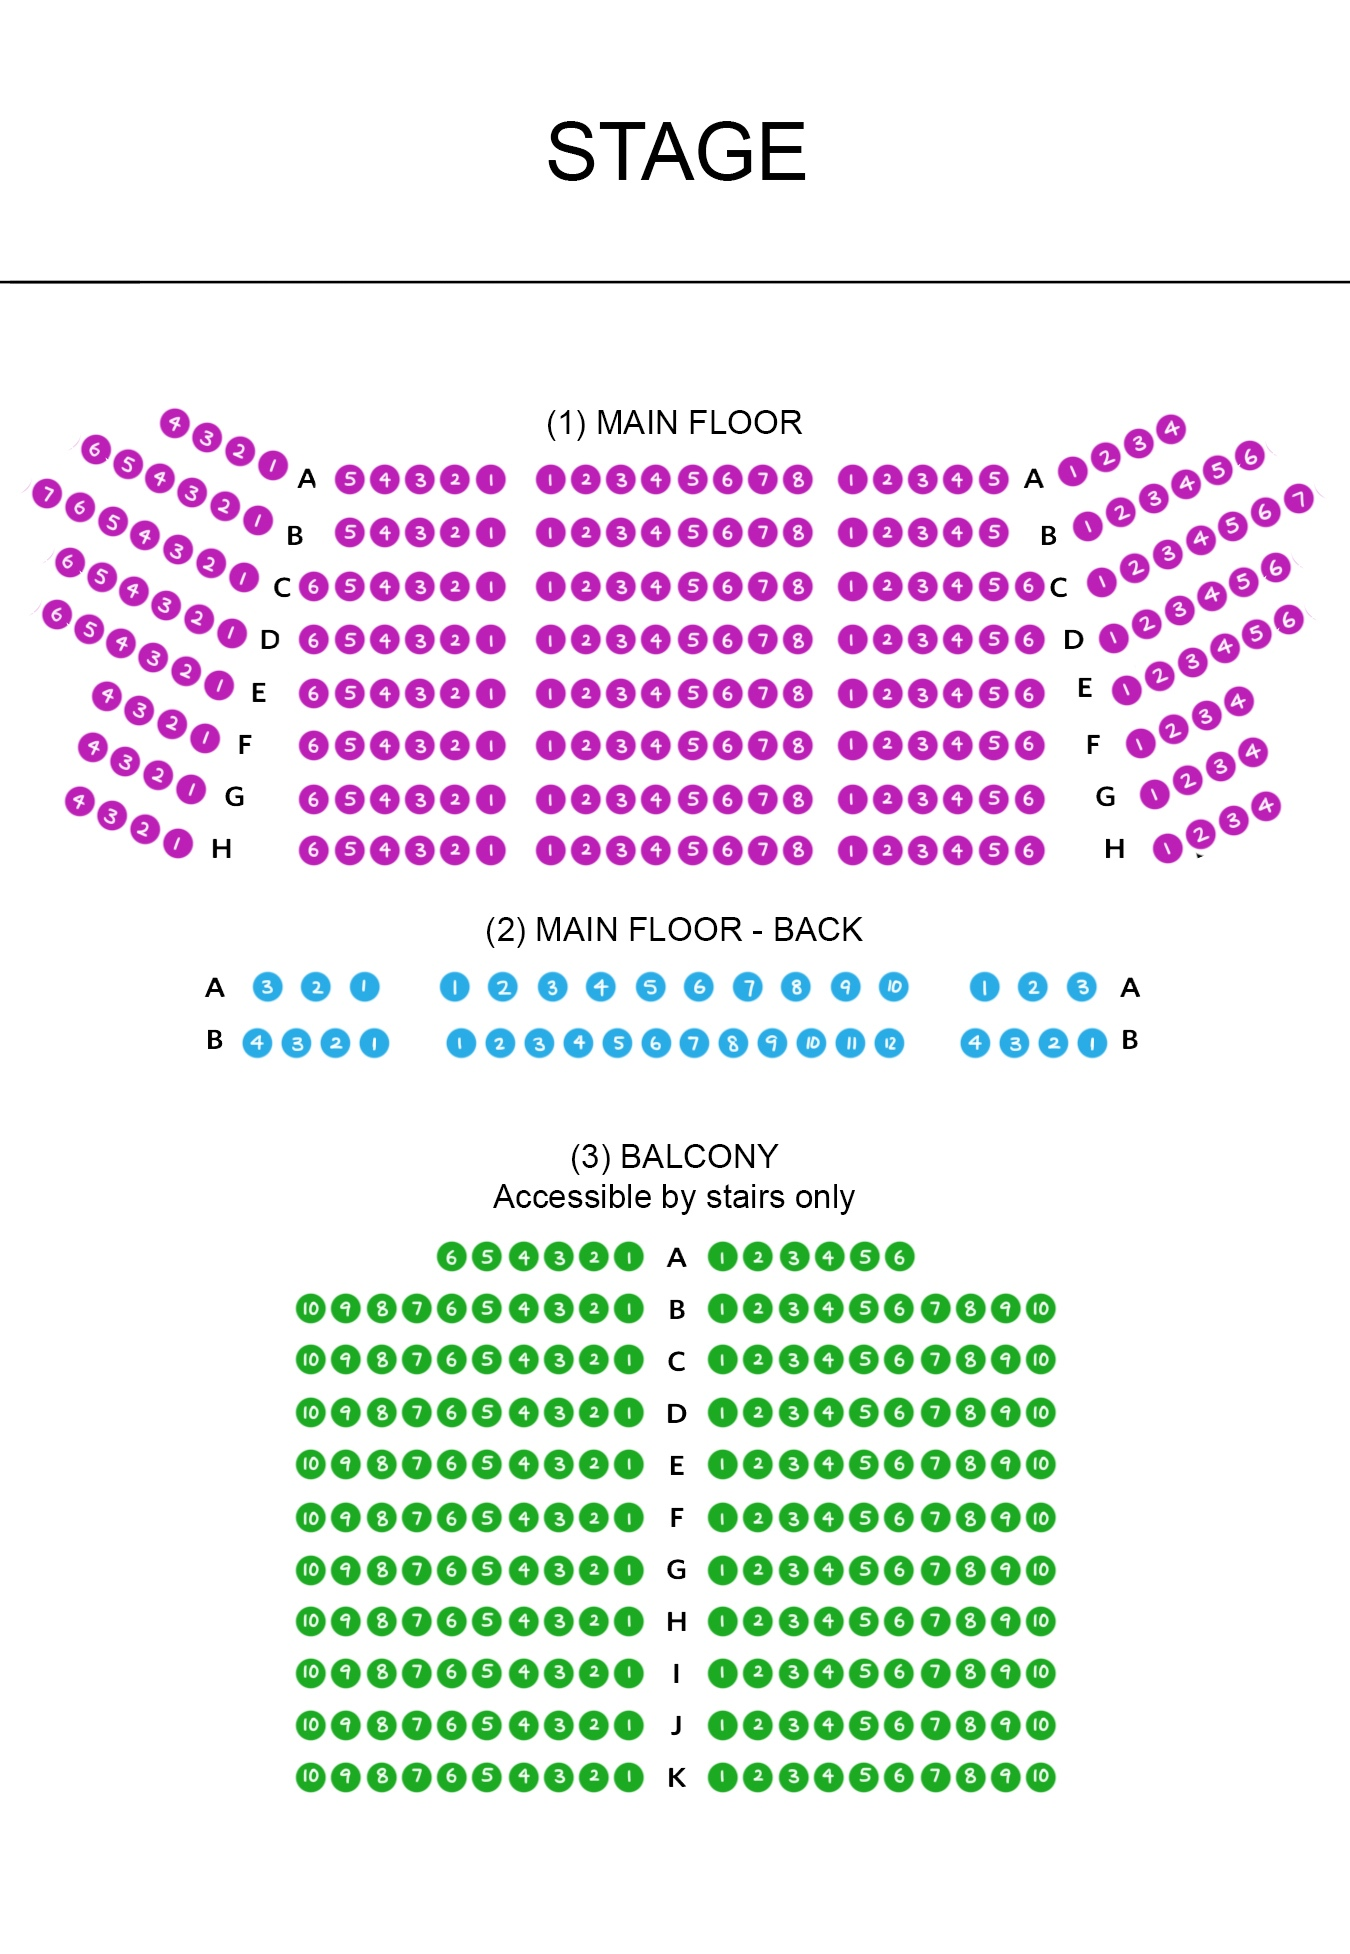 Chicago seating map